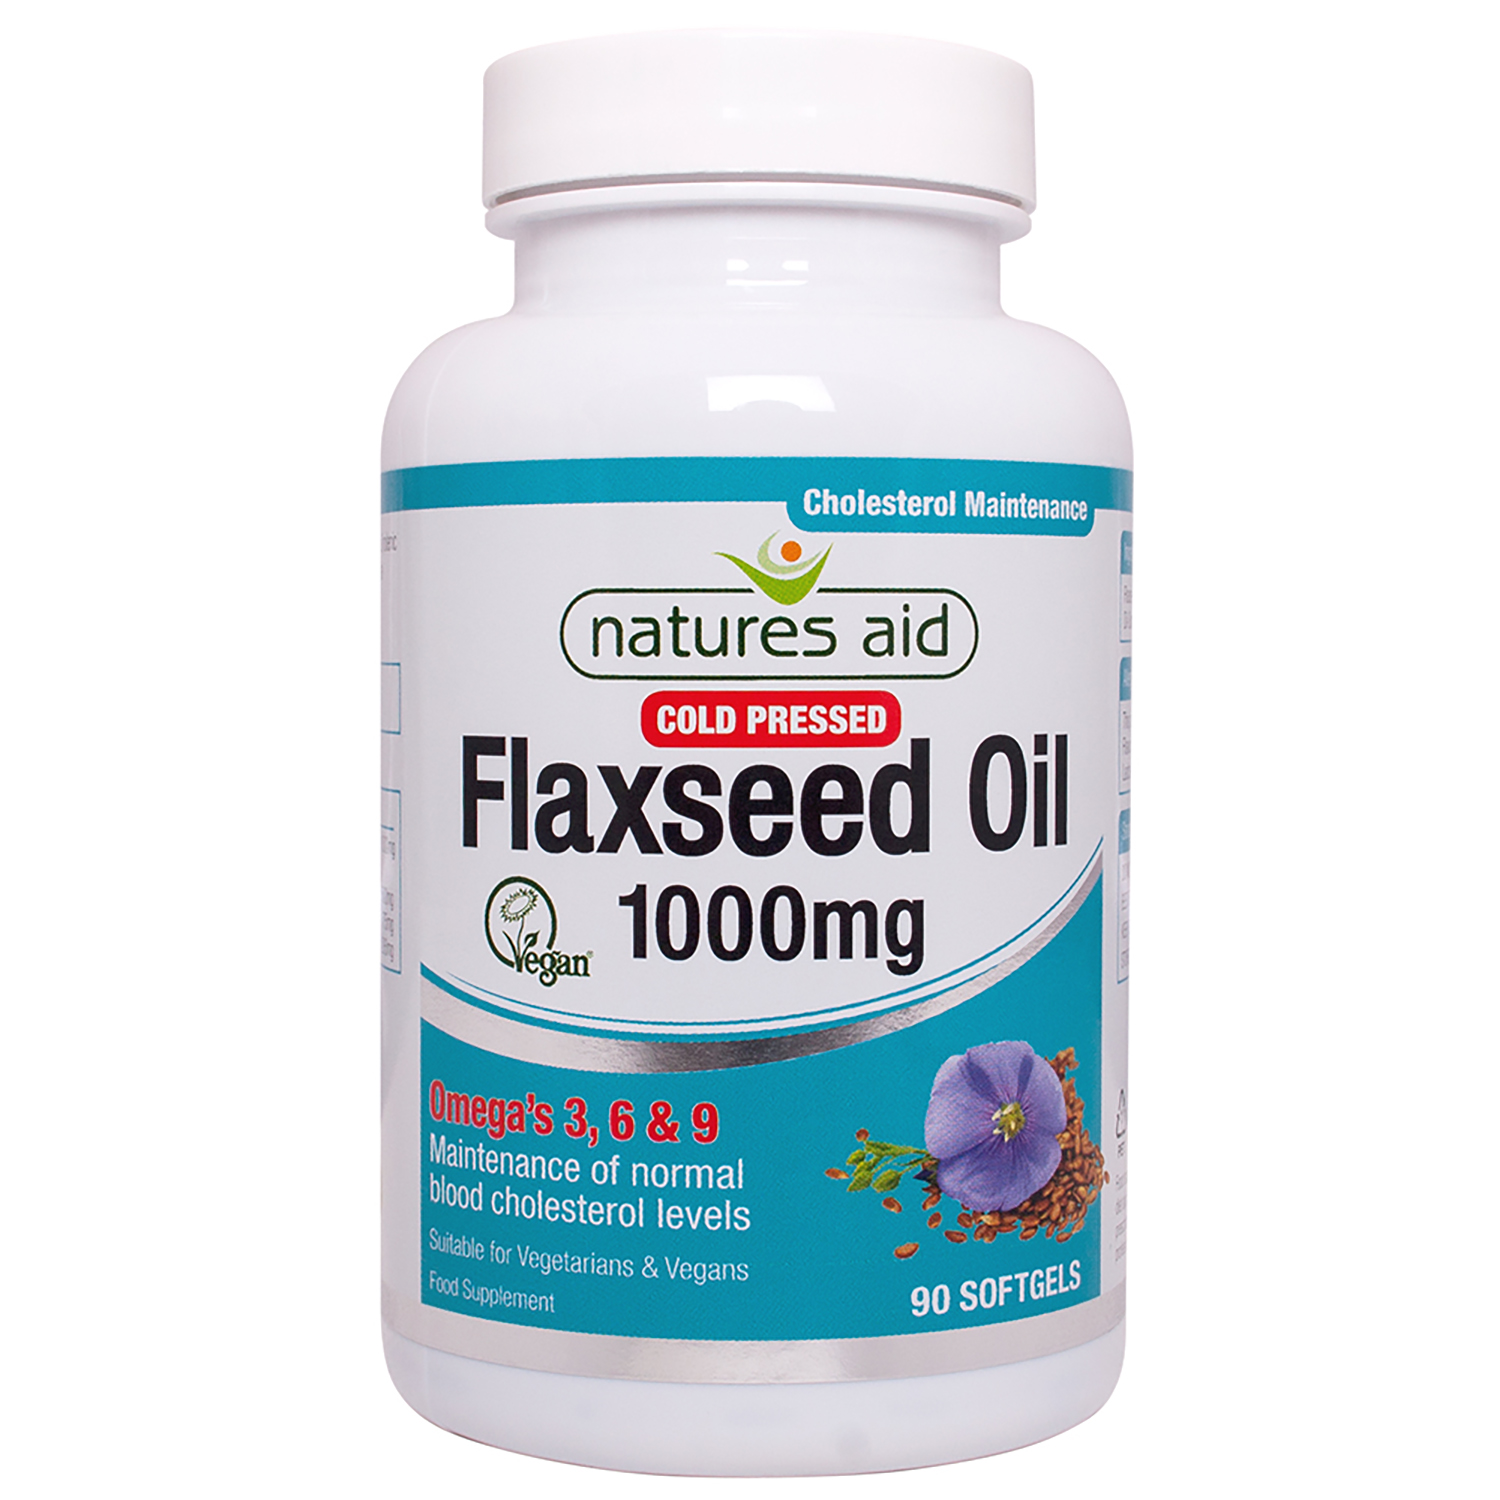 Cold Pressed Flaxseed Oil 1000mg (Omega 3, 6 + 9) 90's (Currently Unavailable)